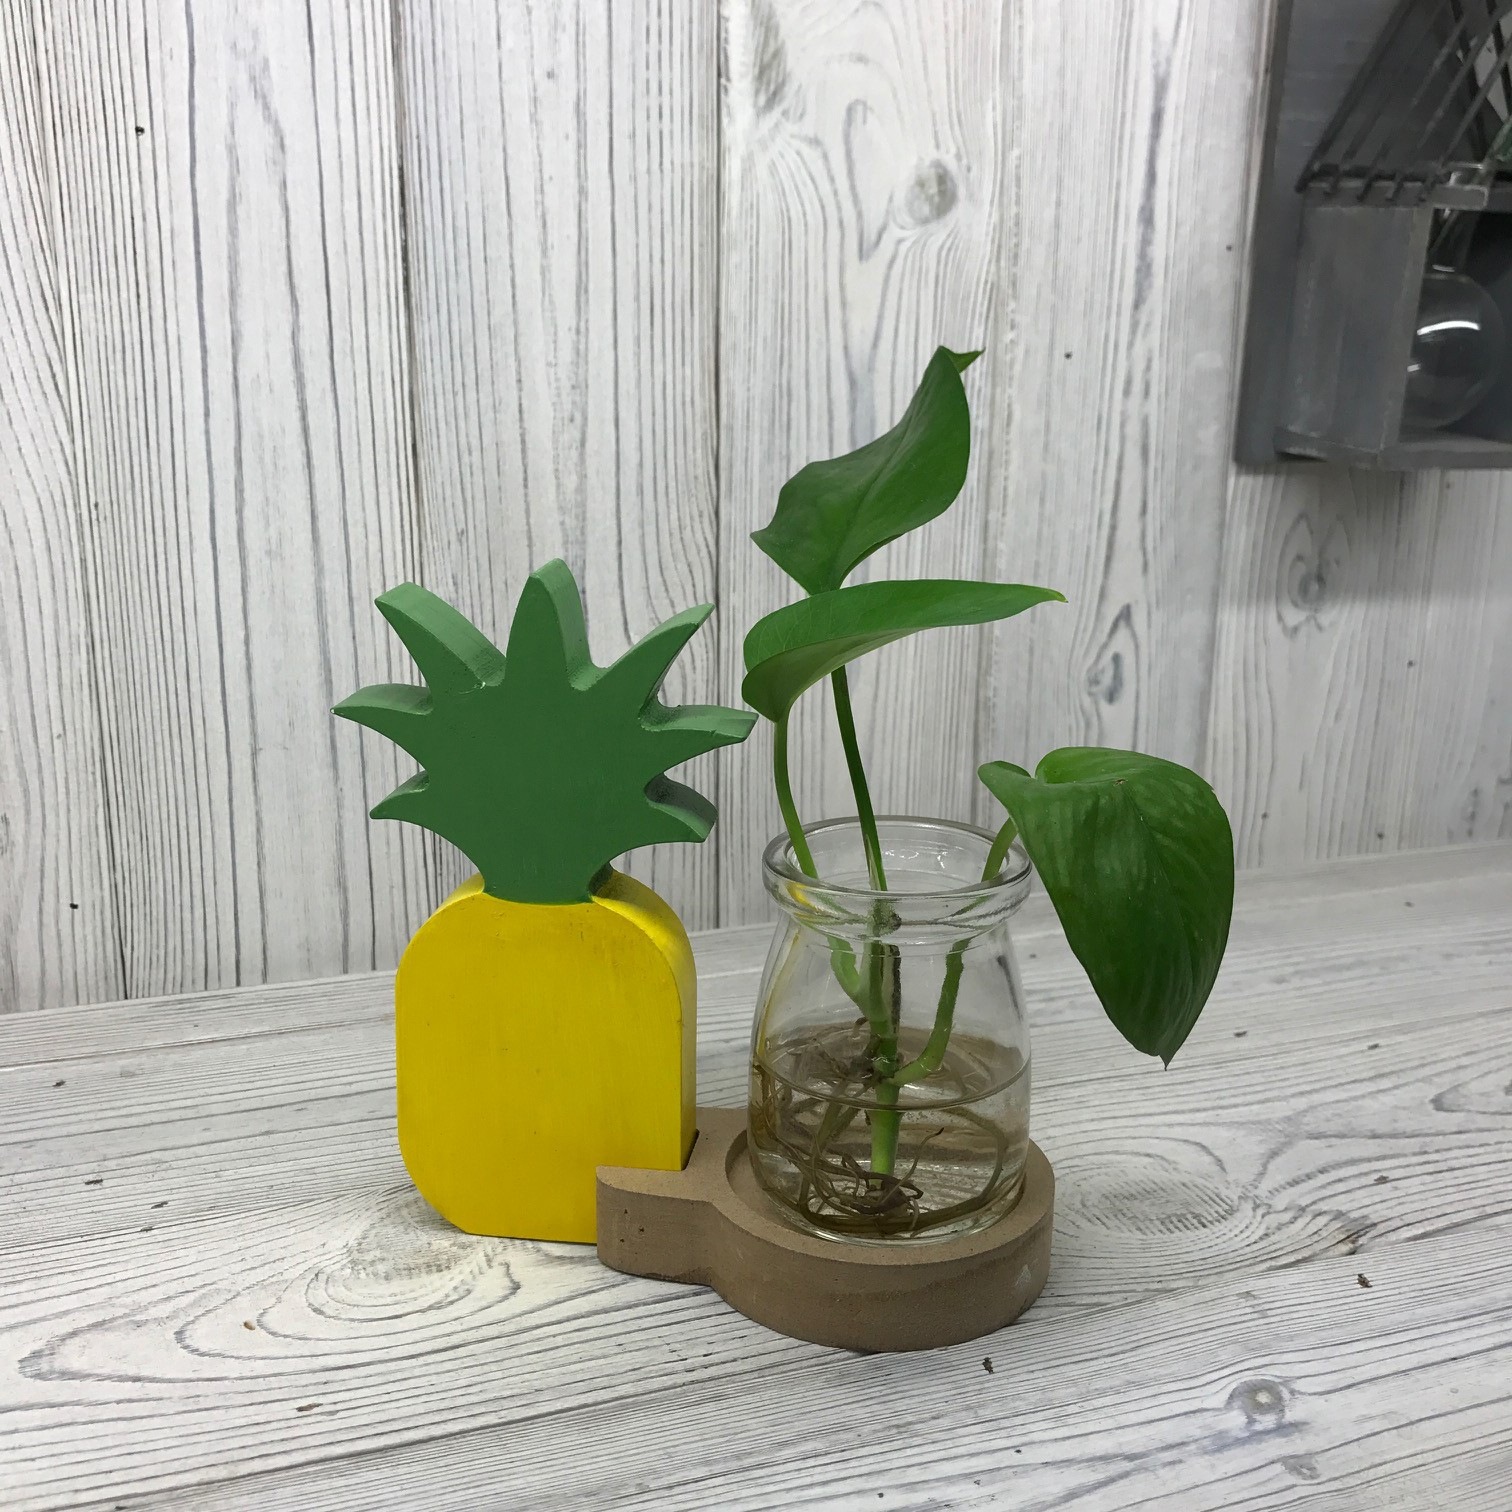 Hydroponic Home Decor - Pineapple Pot